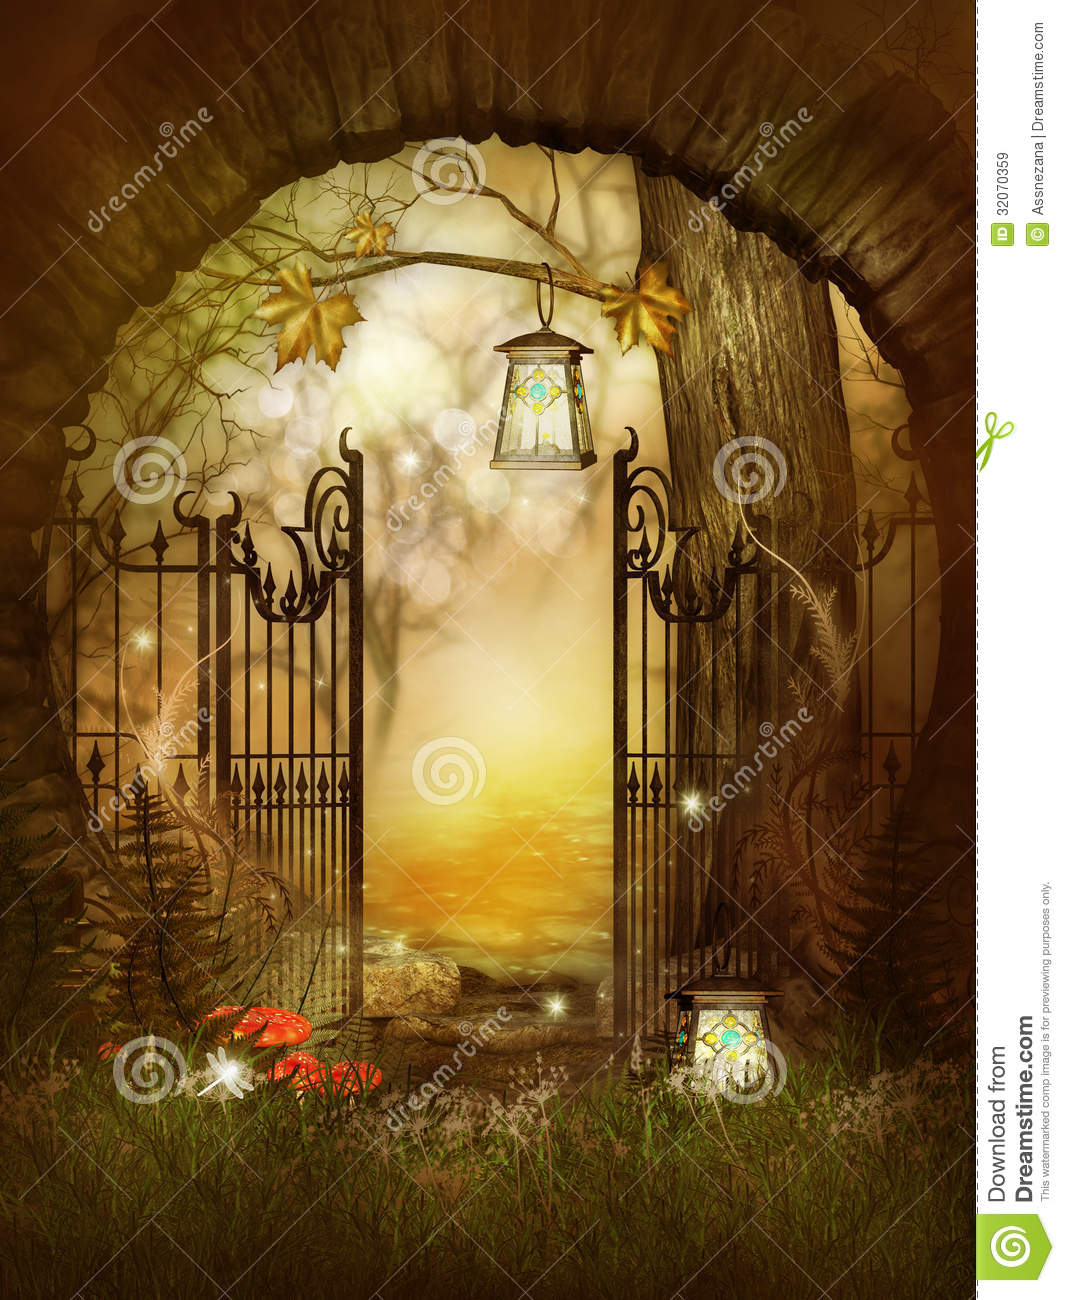 3d Animation Desktop Wallpapers Free Download Open Gates In The Fairytale Wood Royalty Free Stock Images